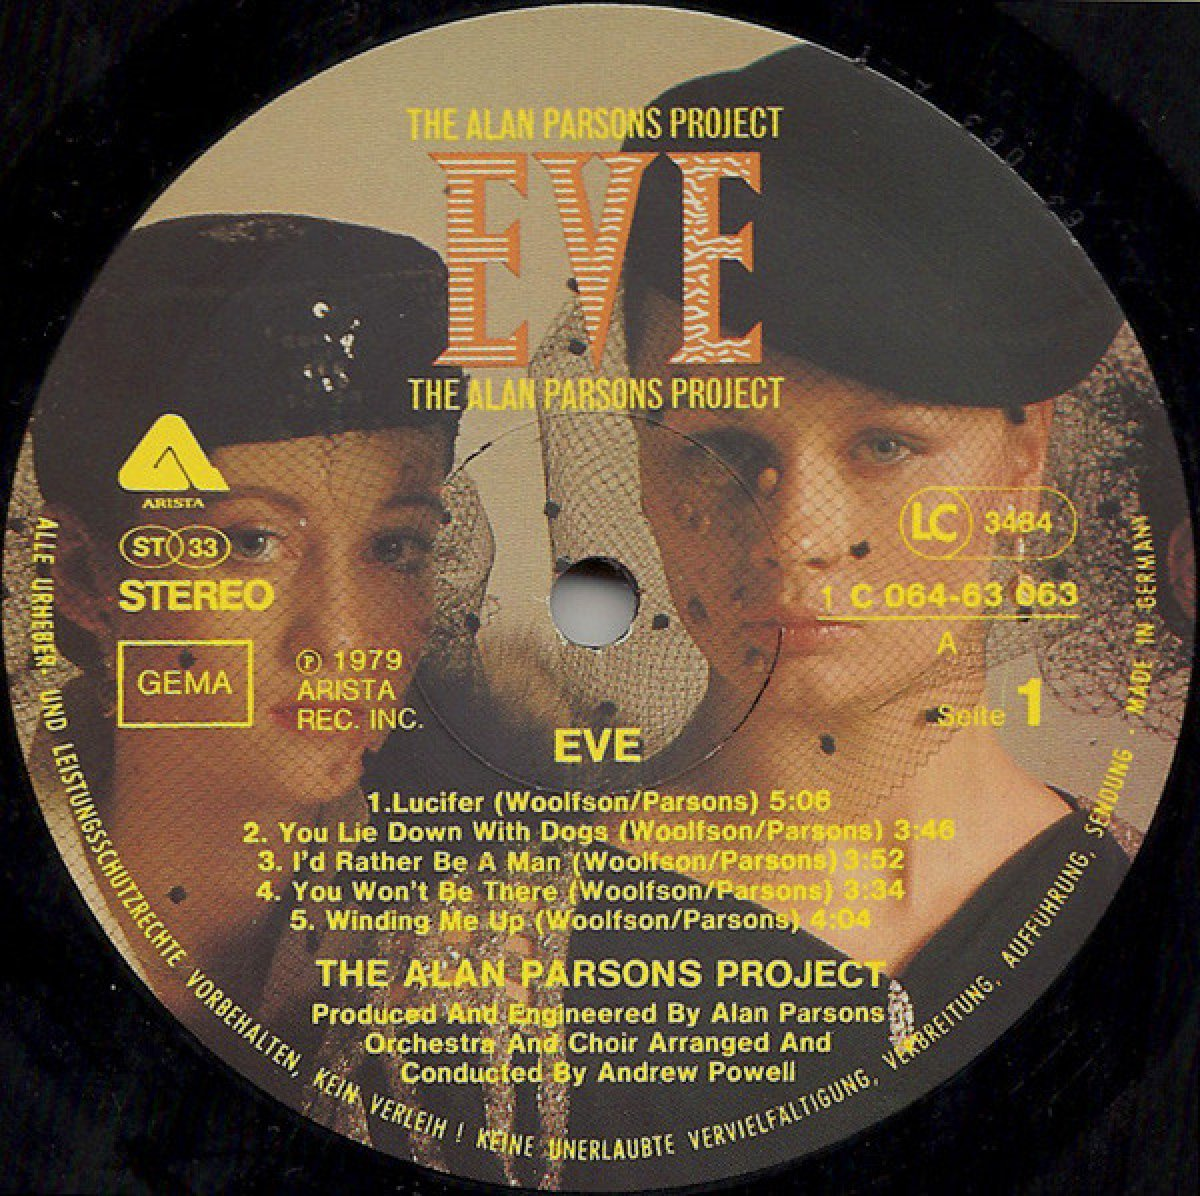 The Alan Parsons Project – Eve